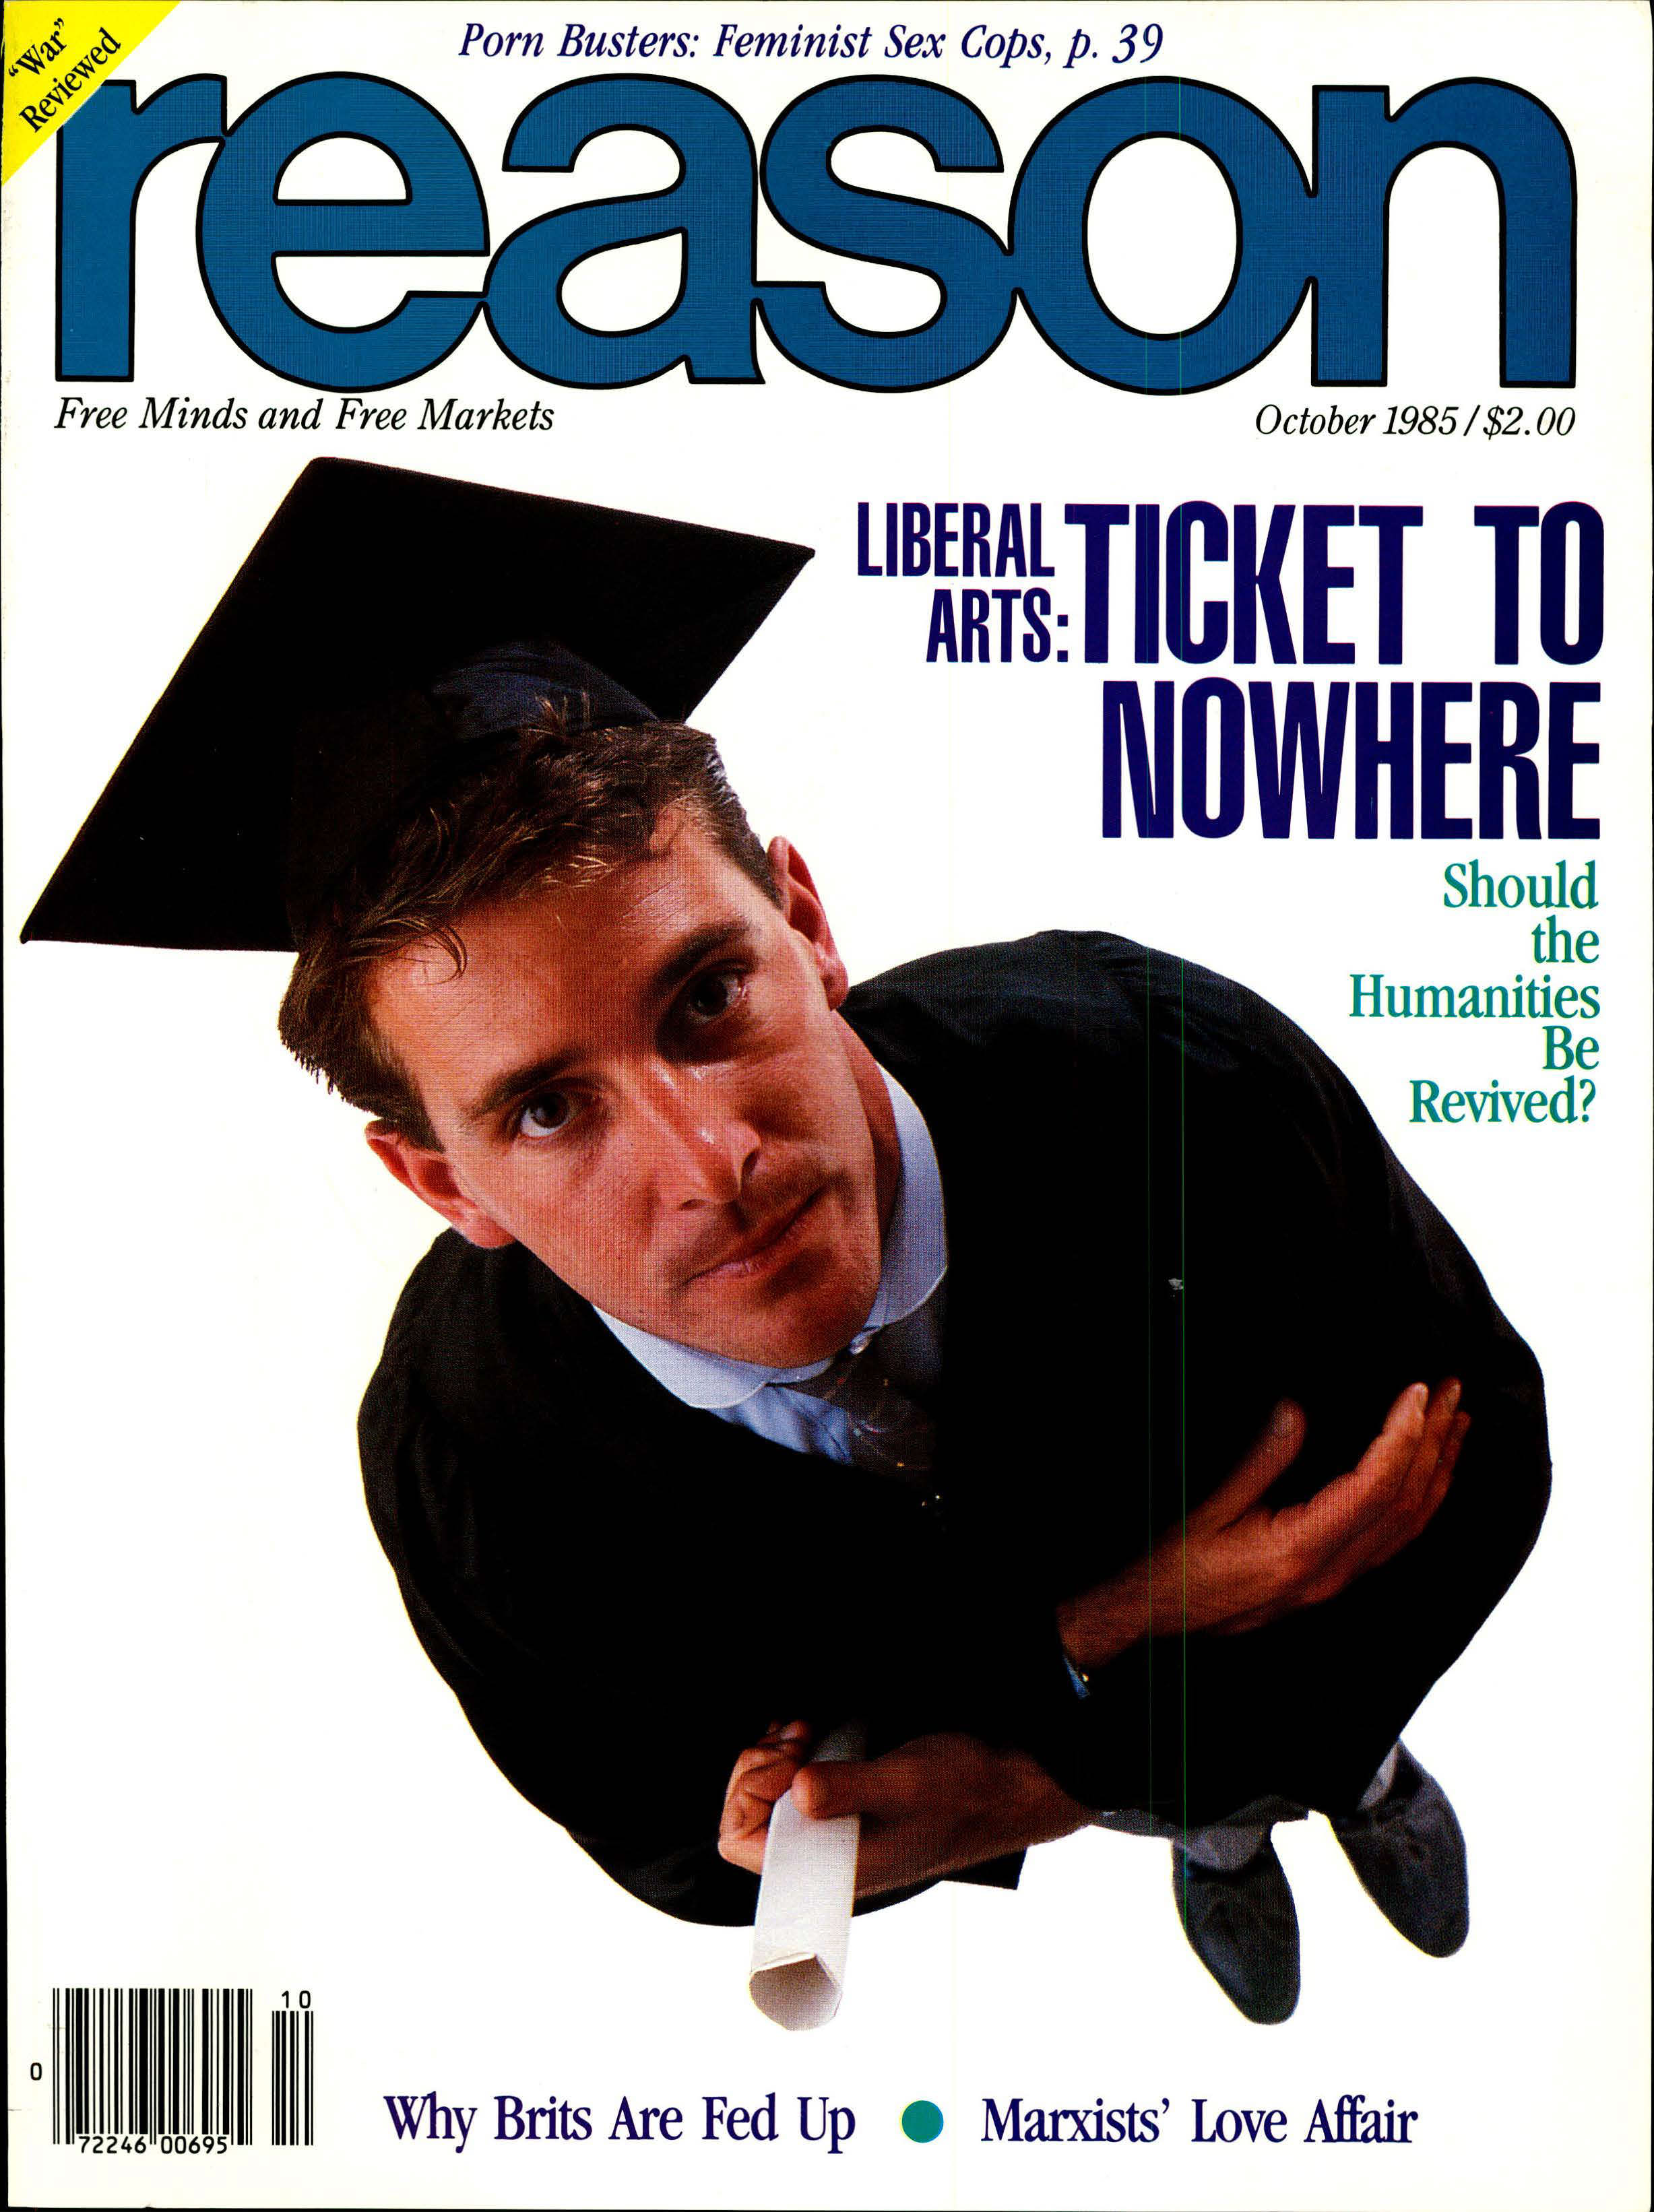 Reason Magazine, October 1985 cover image